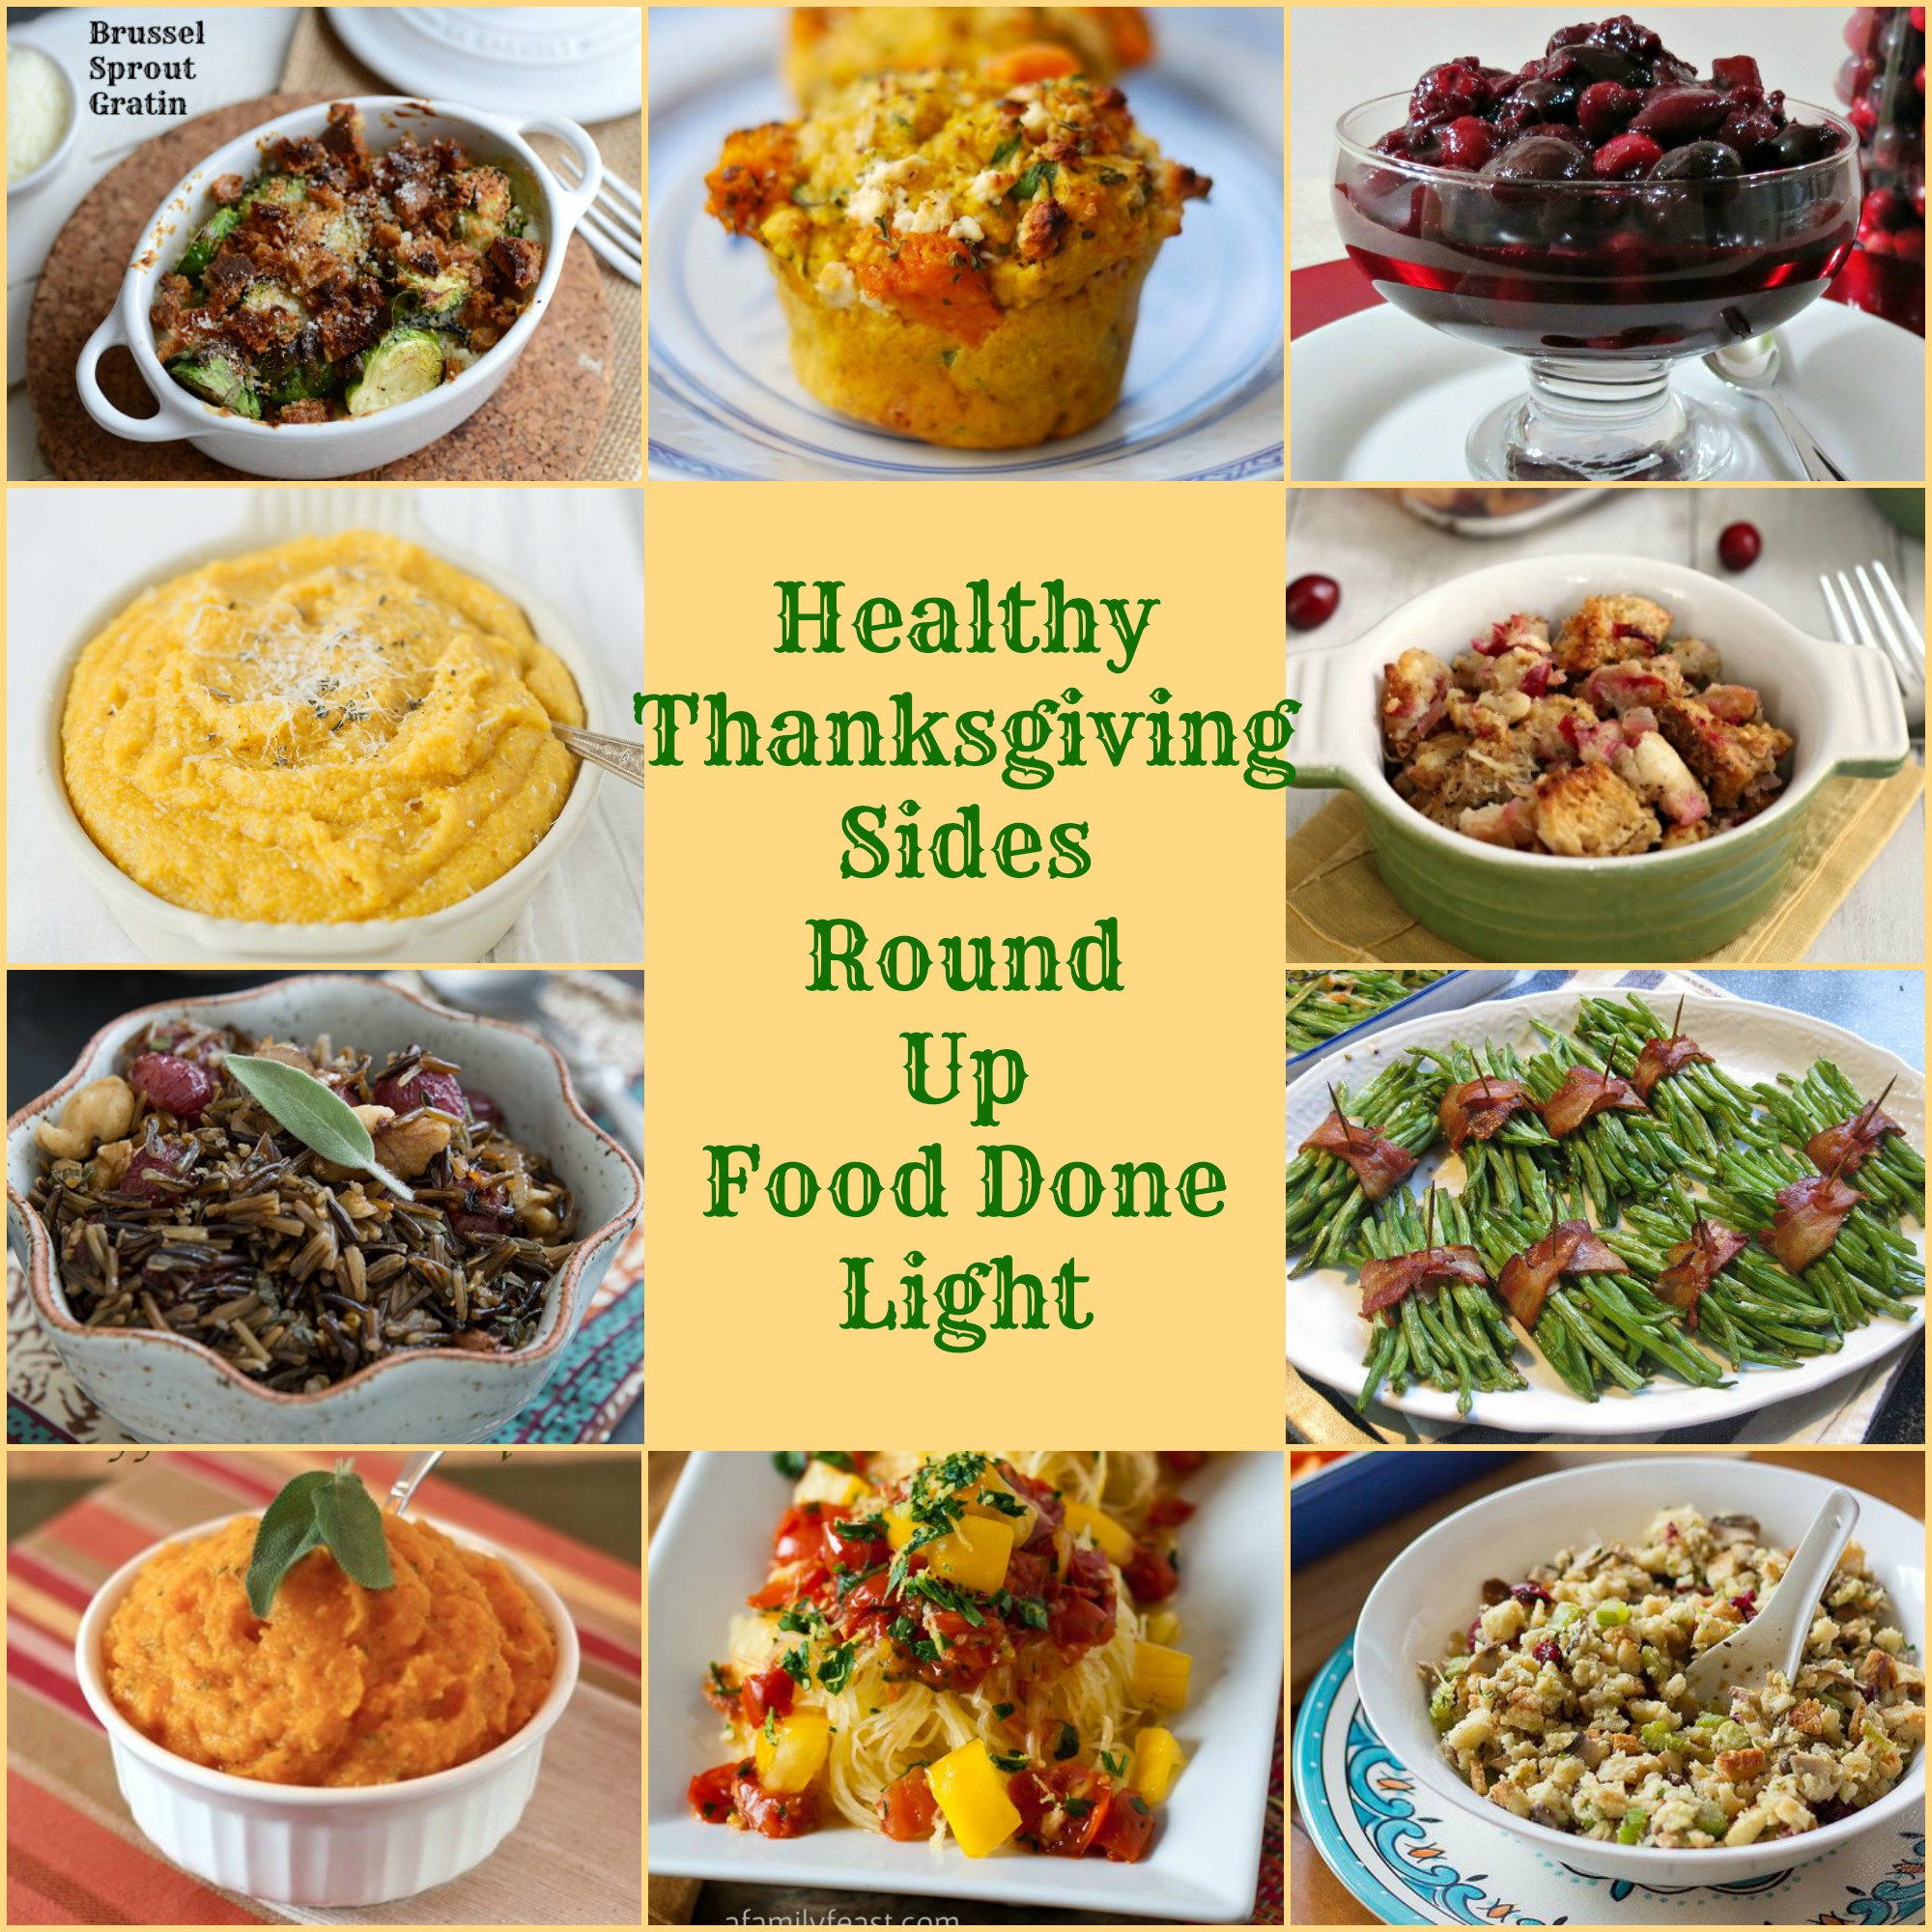 Healthy Thanksgiving Meals  Healthy Thanksgiving Sides Recipe Round Up Food Done Light